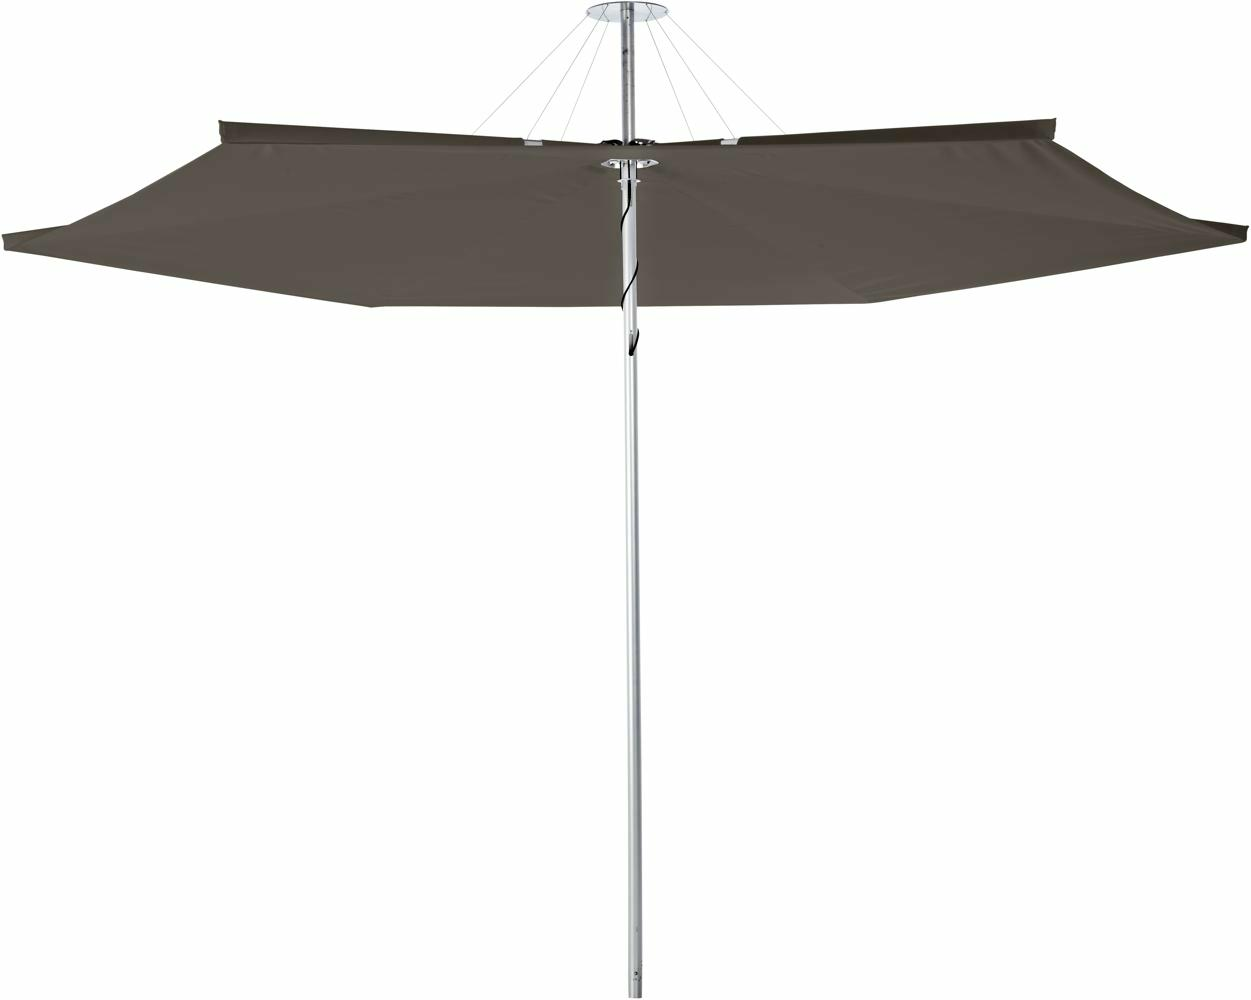 Infina canopy round 3 m in colour Taupe